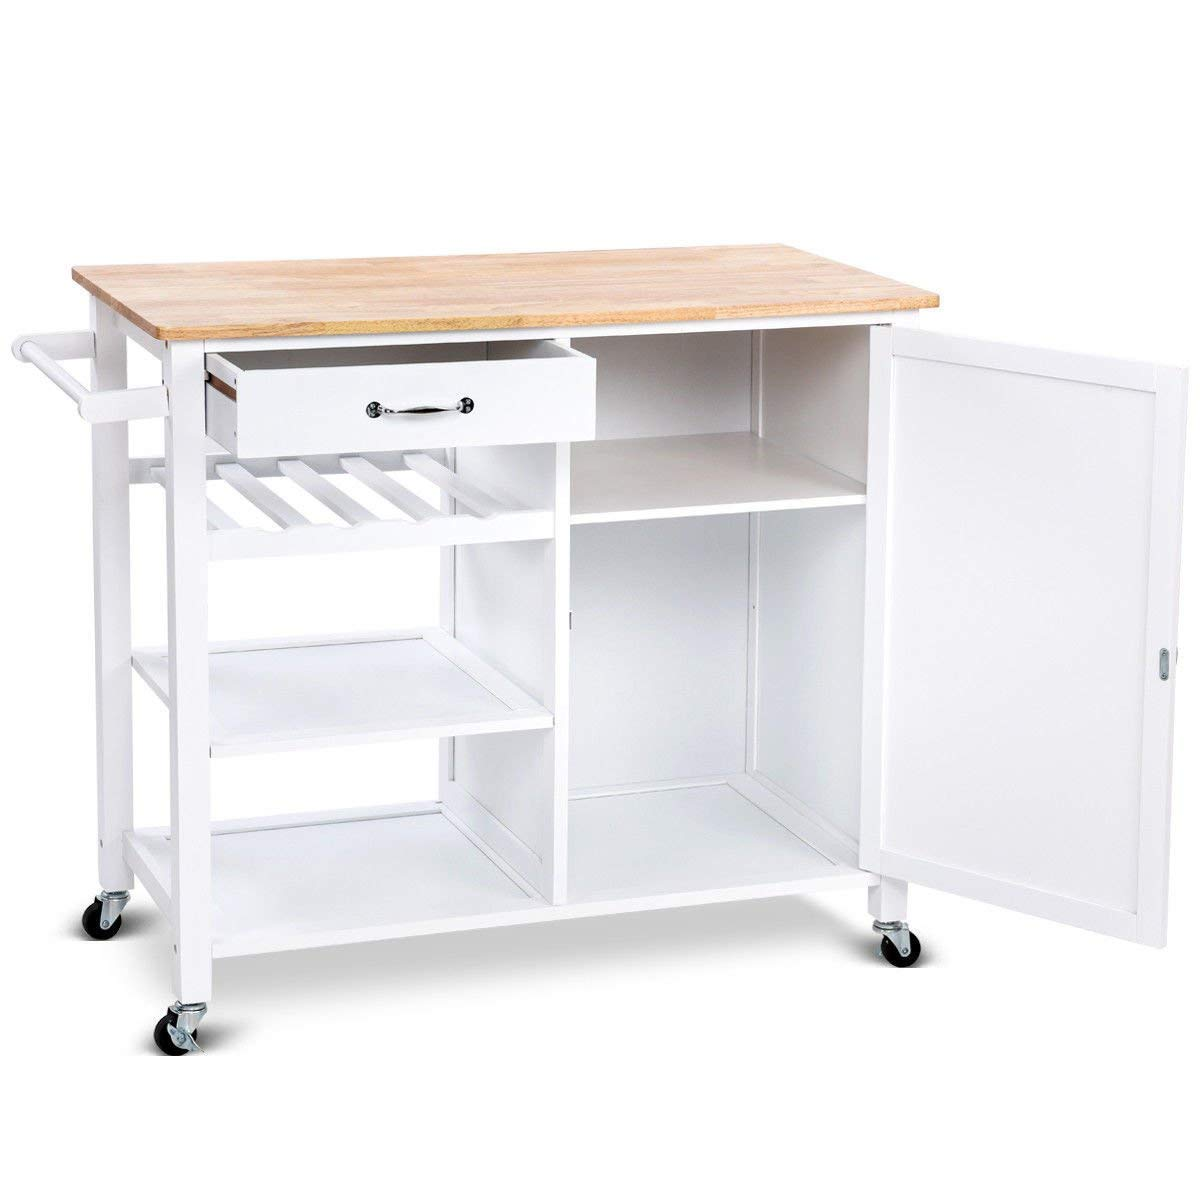 Lapha' Trolley Island Cart Wheel Cabinet Portable White Wood Kitchen Shelf Drawer Wine Rack Kitchen Dining Bar Cabinet Drawers Utility Island Rolling Kitchen Storage Cart Trolley White Table Beverages